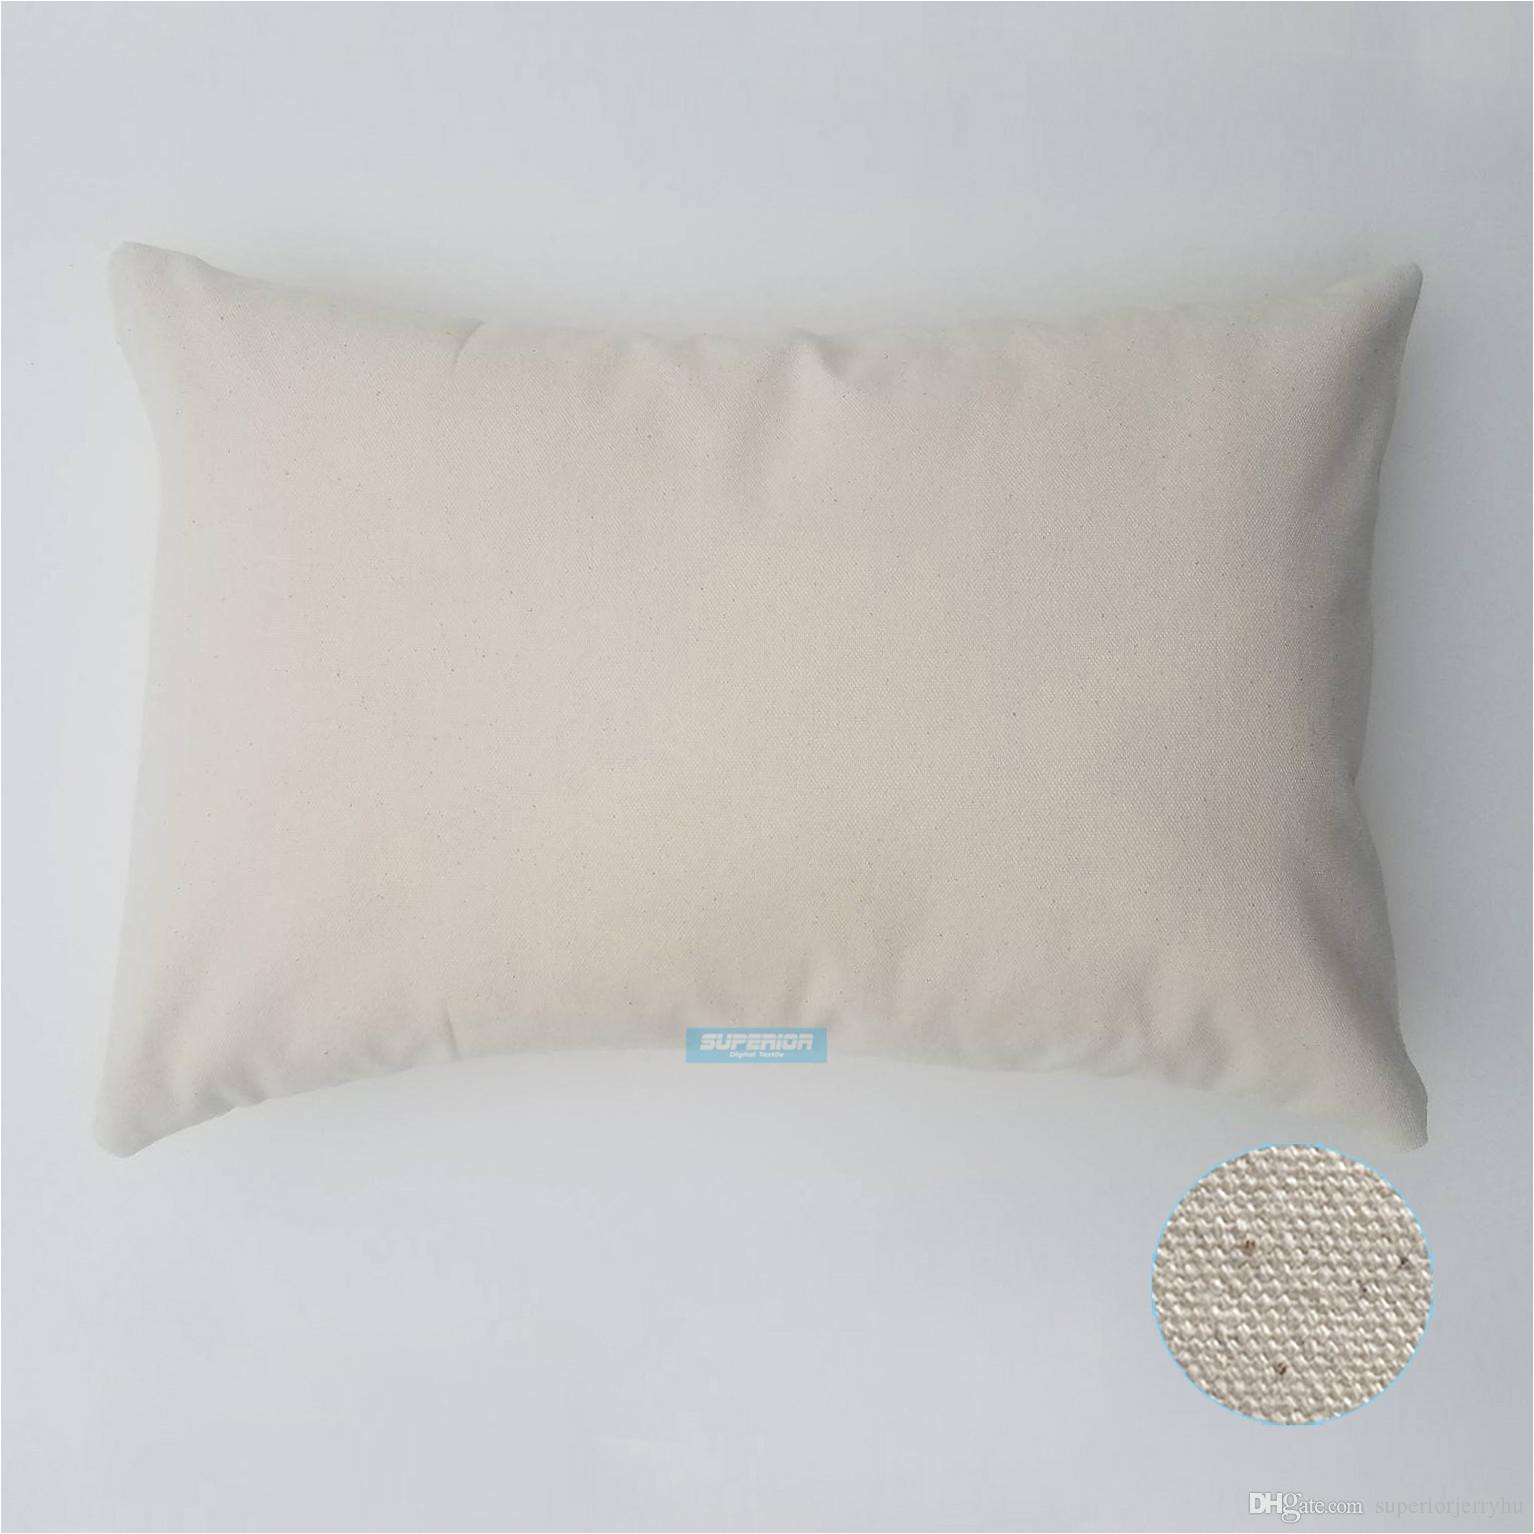 Blank Canvas Pillow Covers wholesale 12×18 Inches wholesale 8oz White or Natural Cotton Canvas Pillow